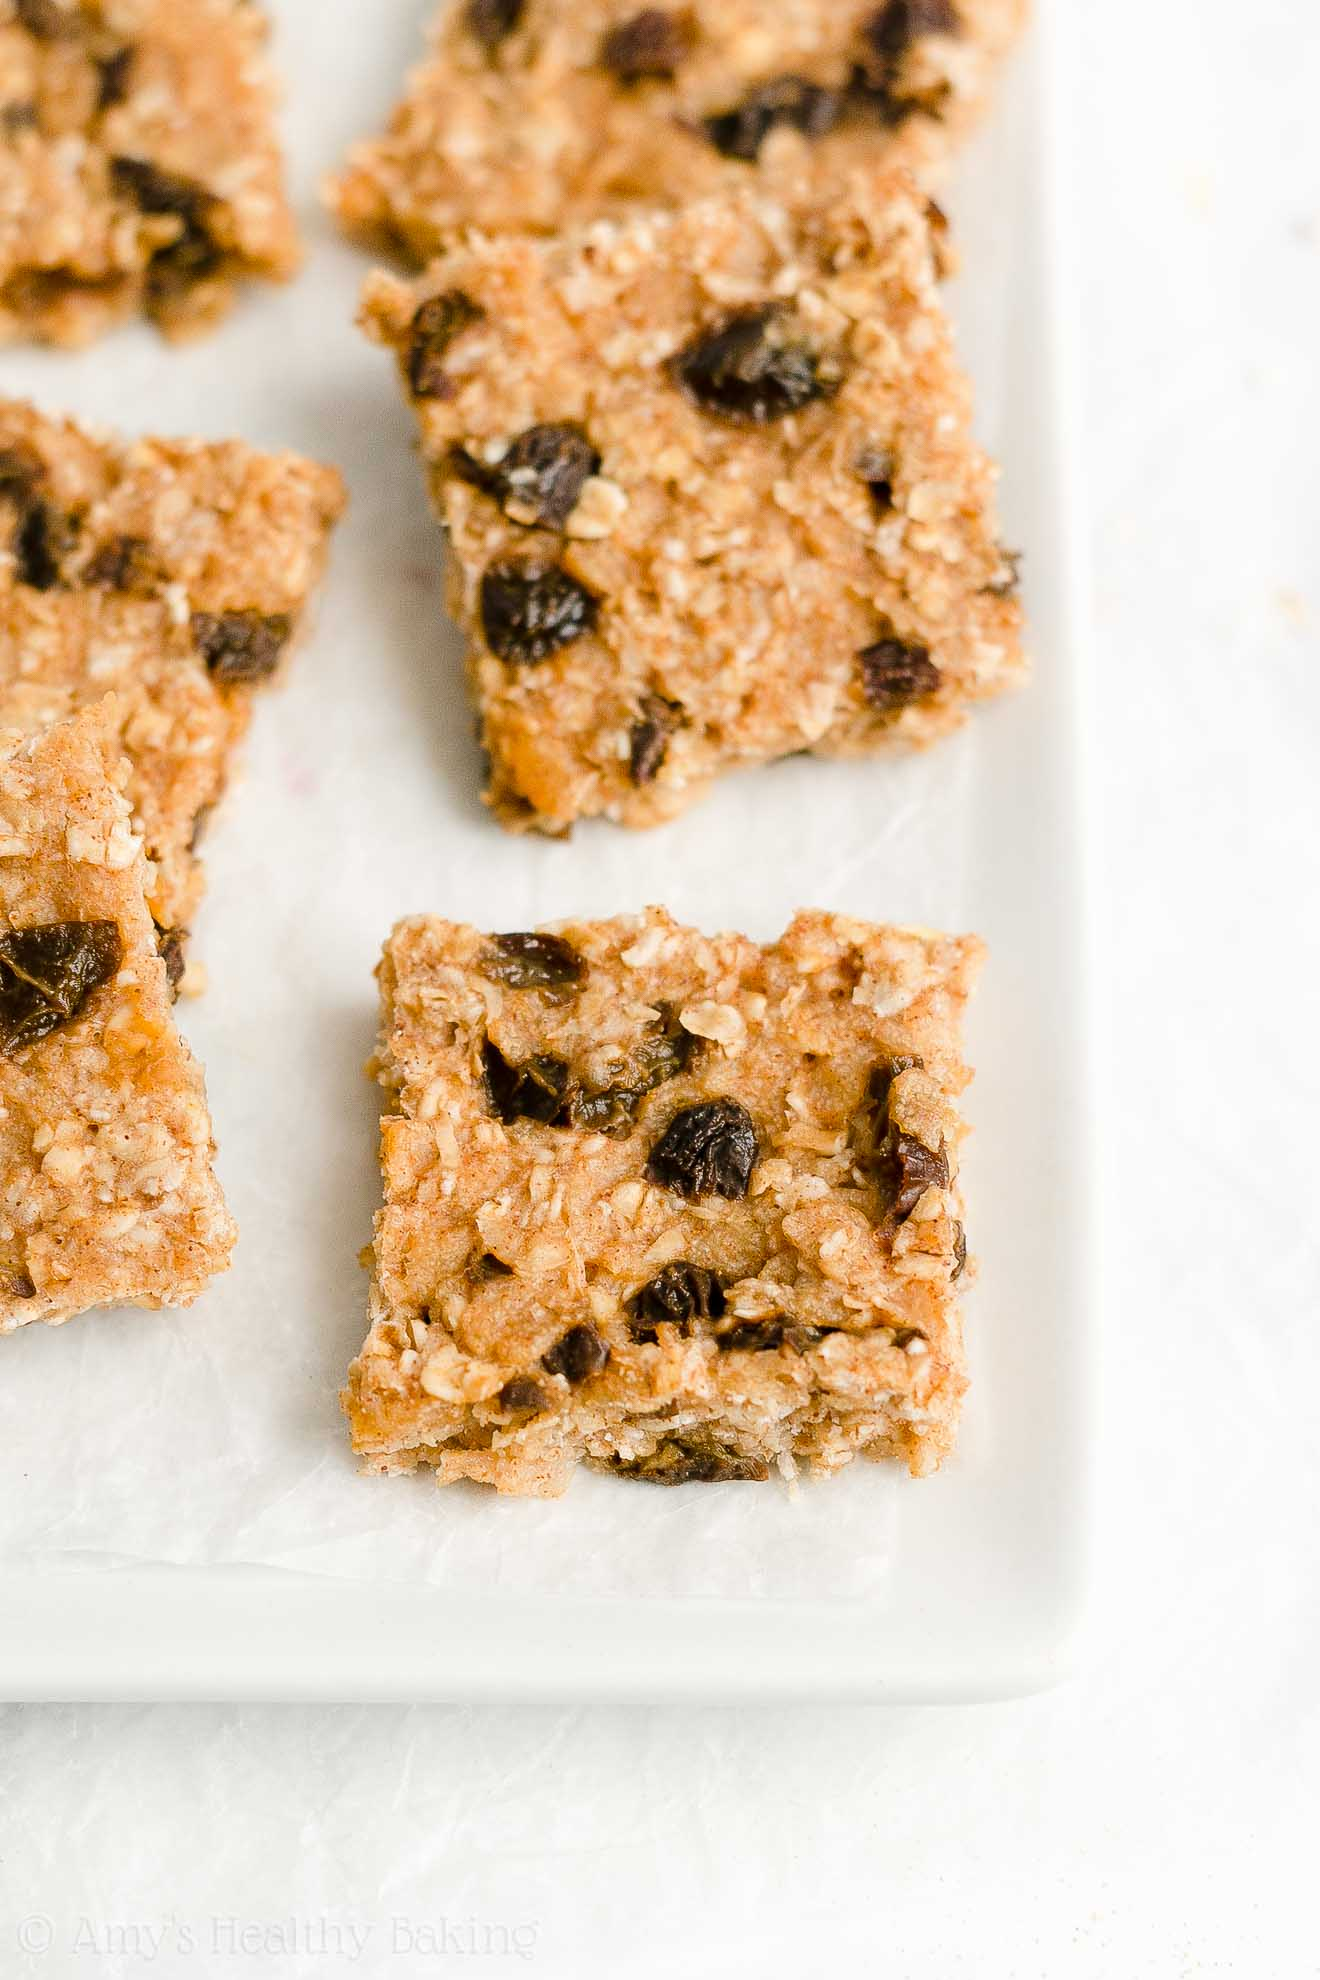 Easy Healthy Gluten Free Low Fat Soft Chewy Oatmeal Raisin Granola Bars